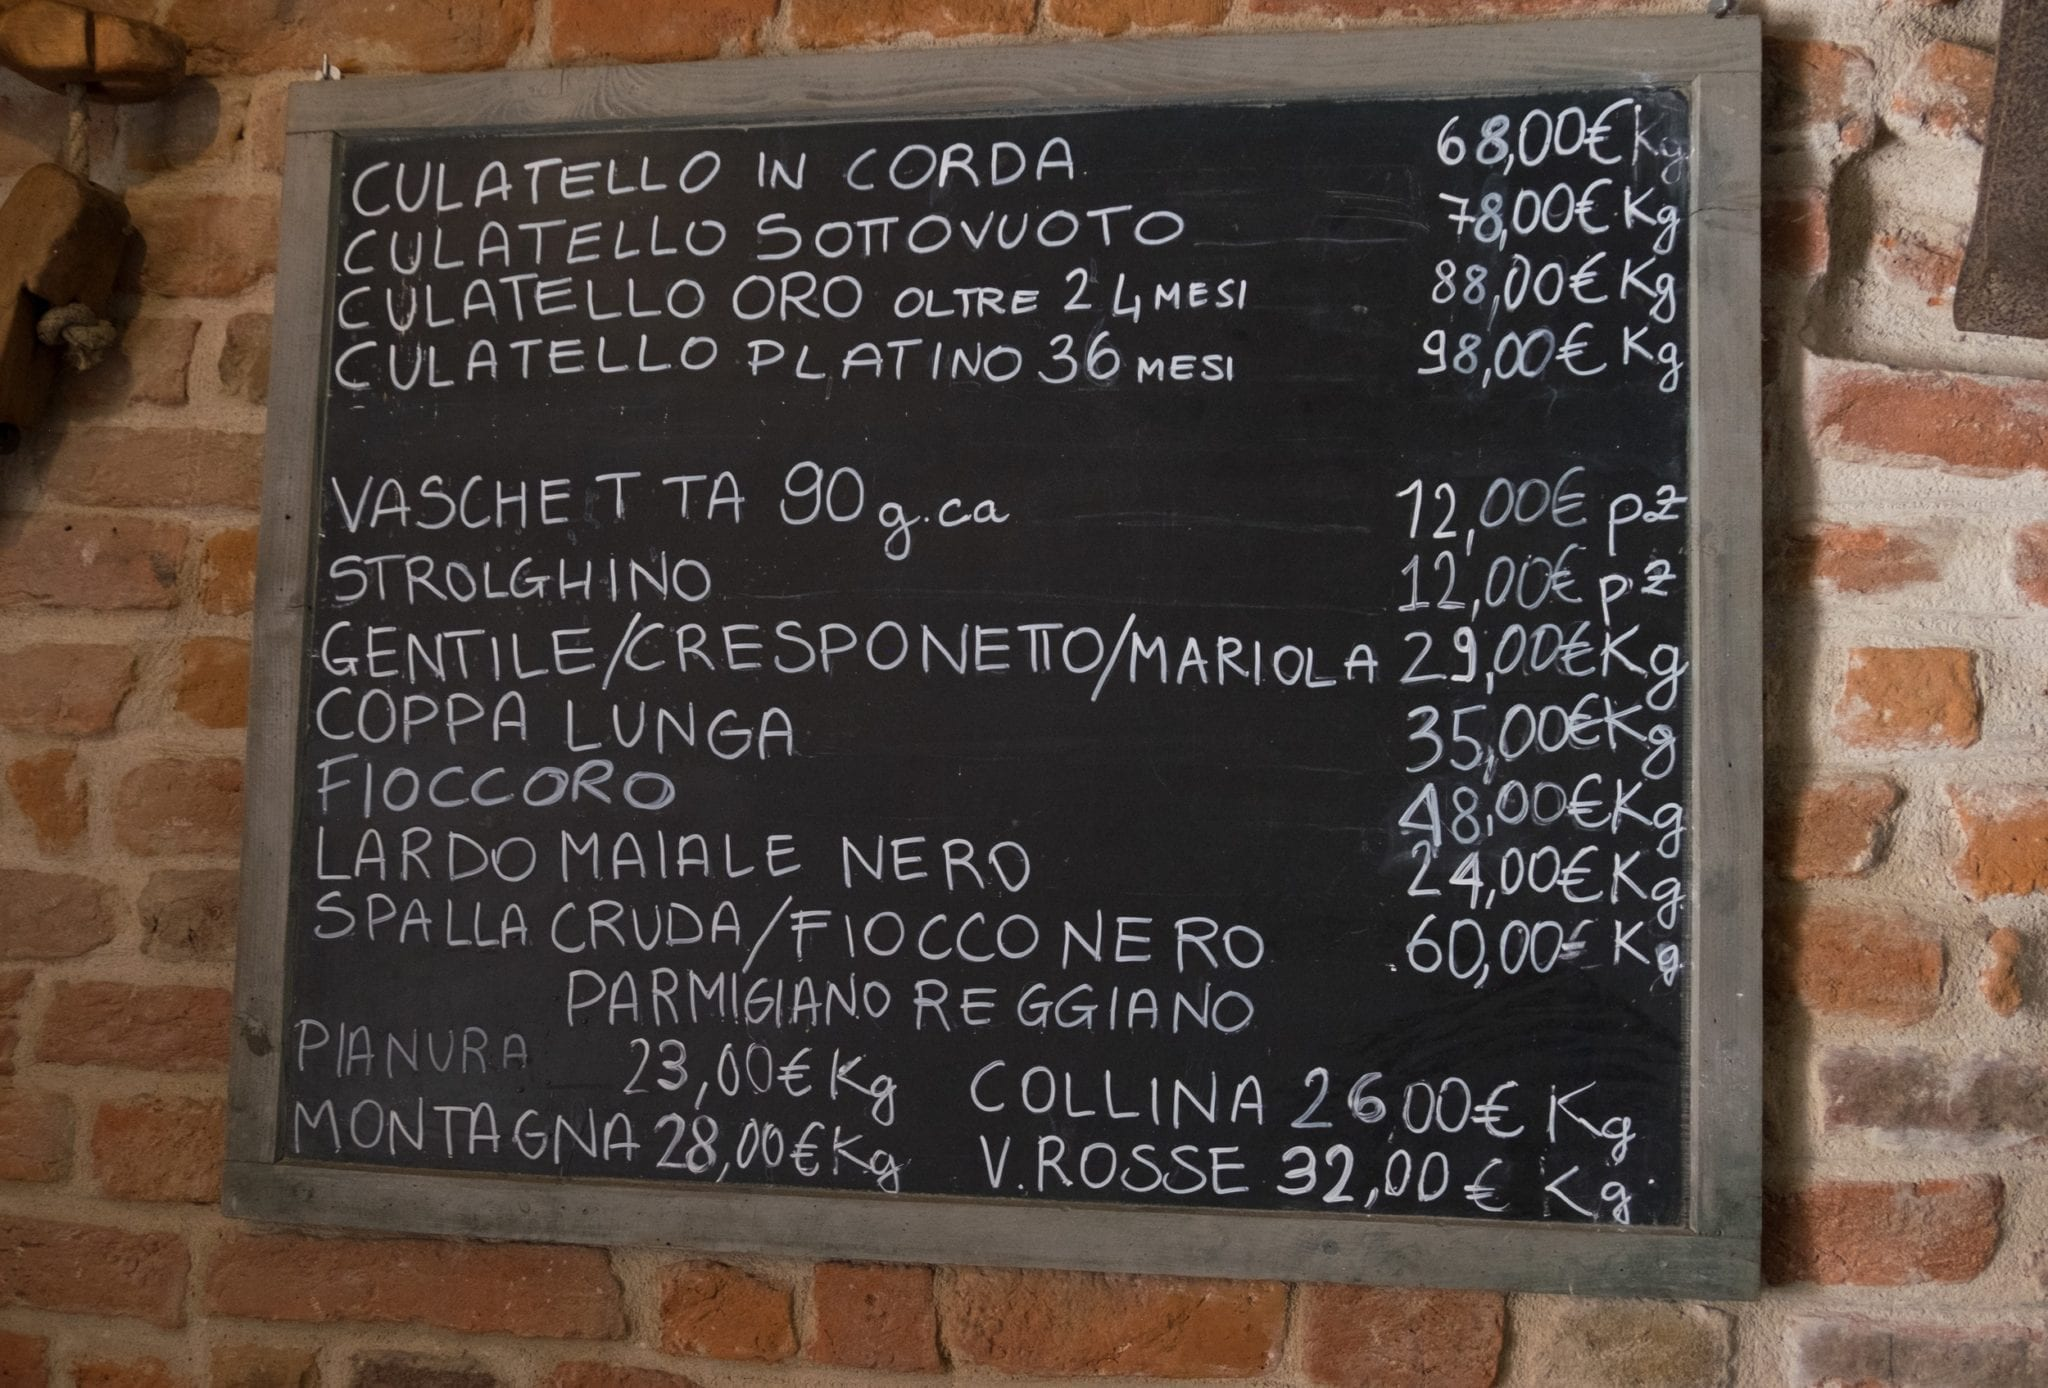 A blackboard with the prices of culatello written on them, starting at 68 euros per kilogram.